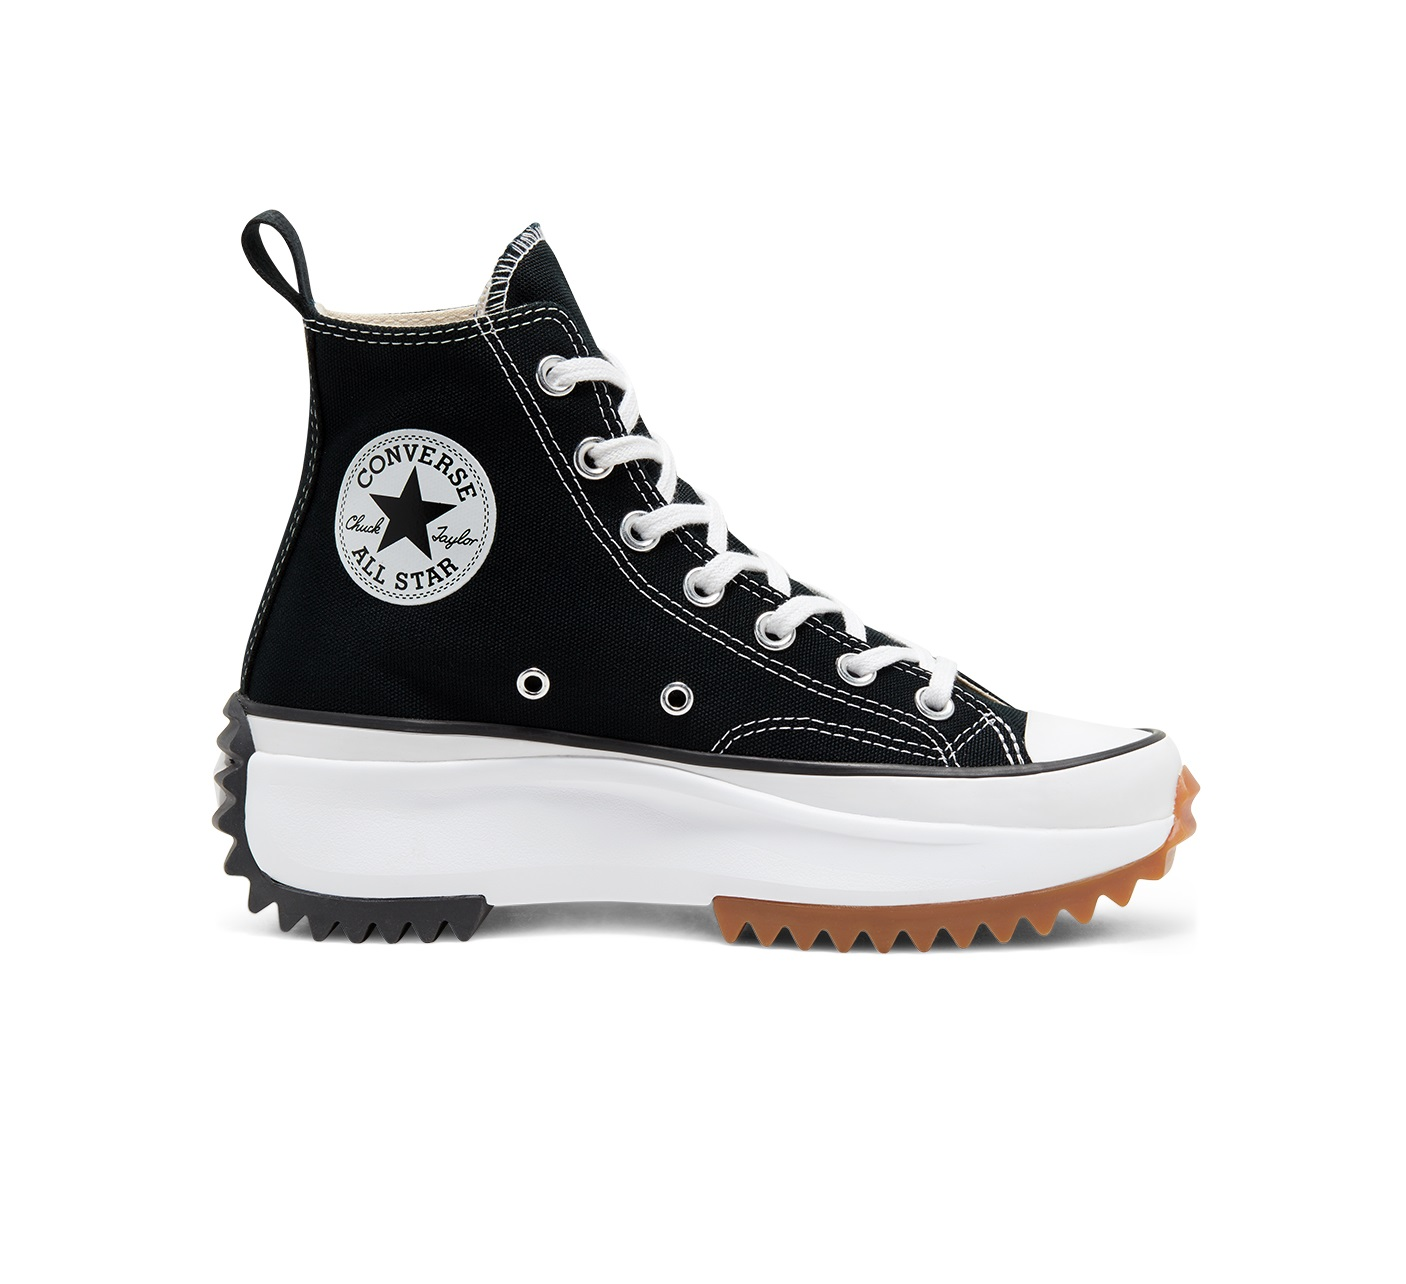 Converse Run Star Hike High 'Black}